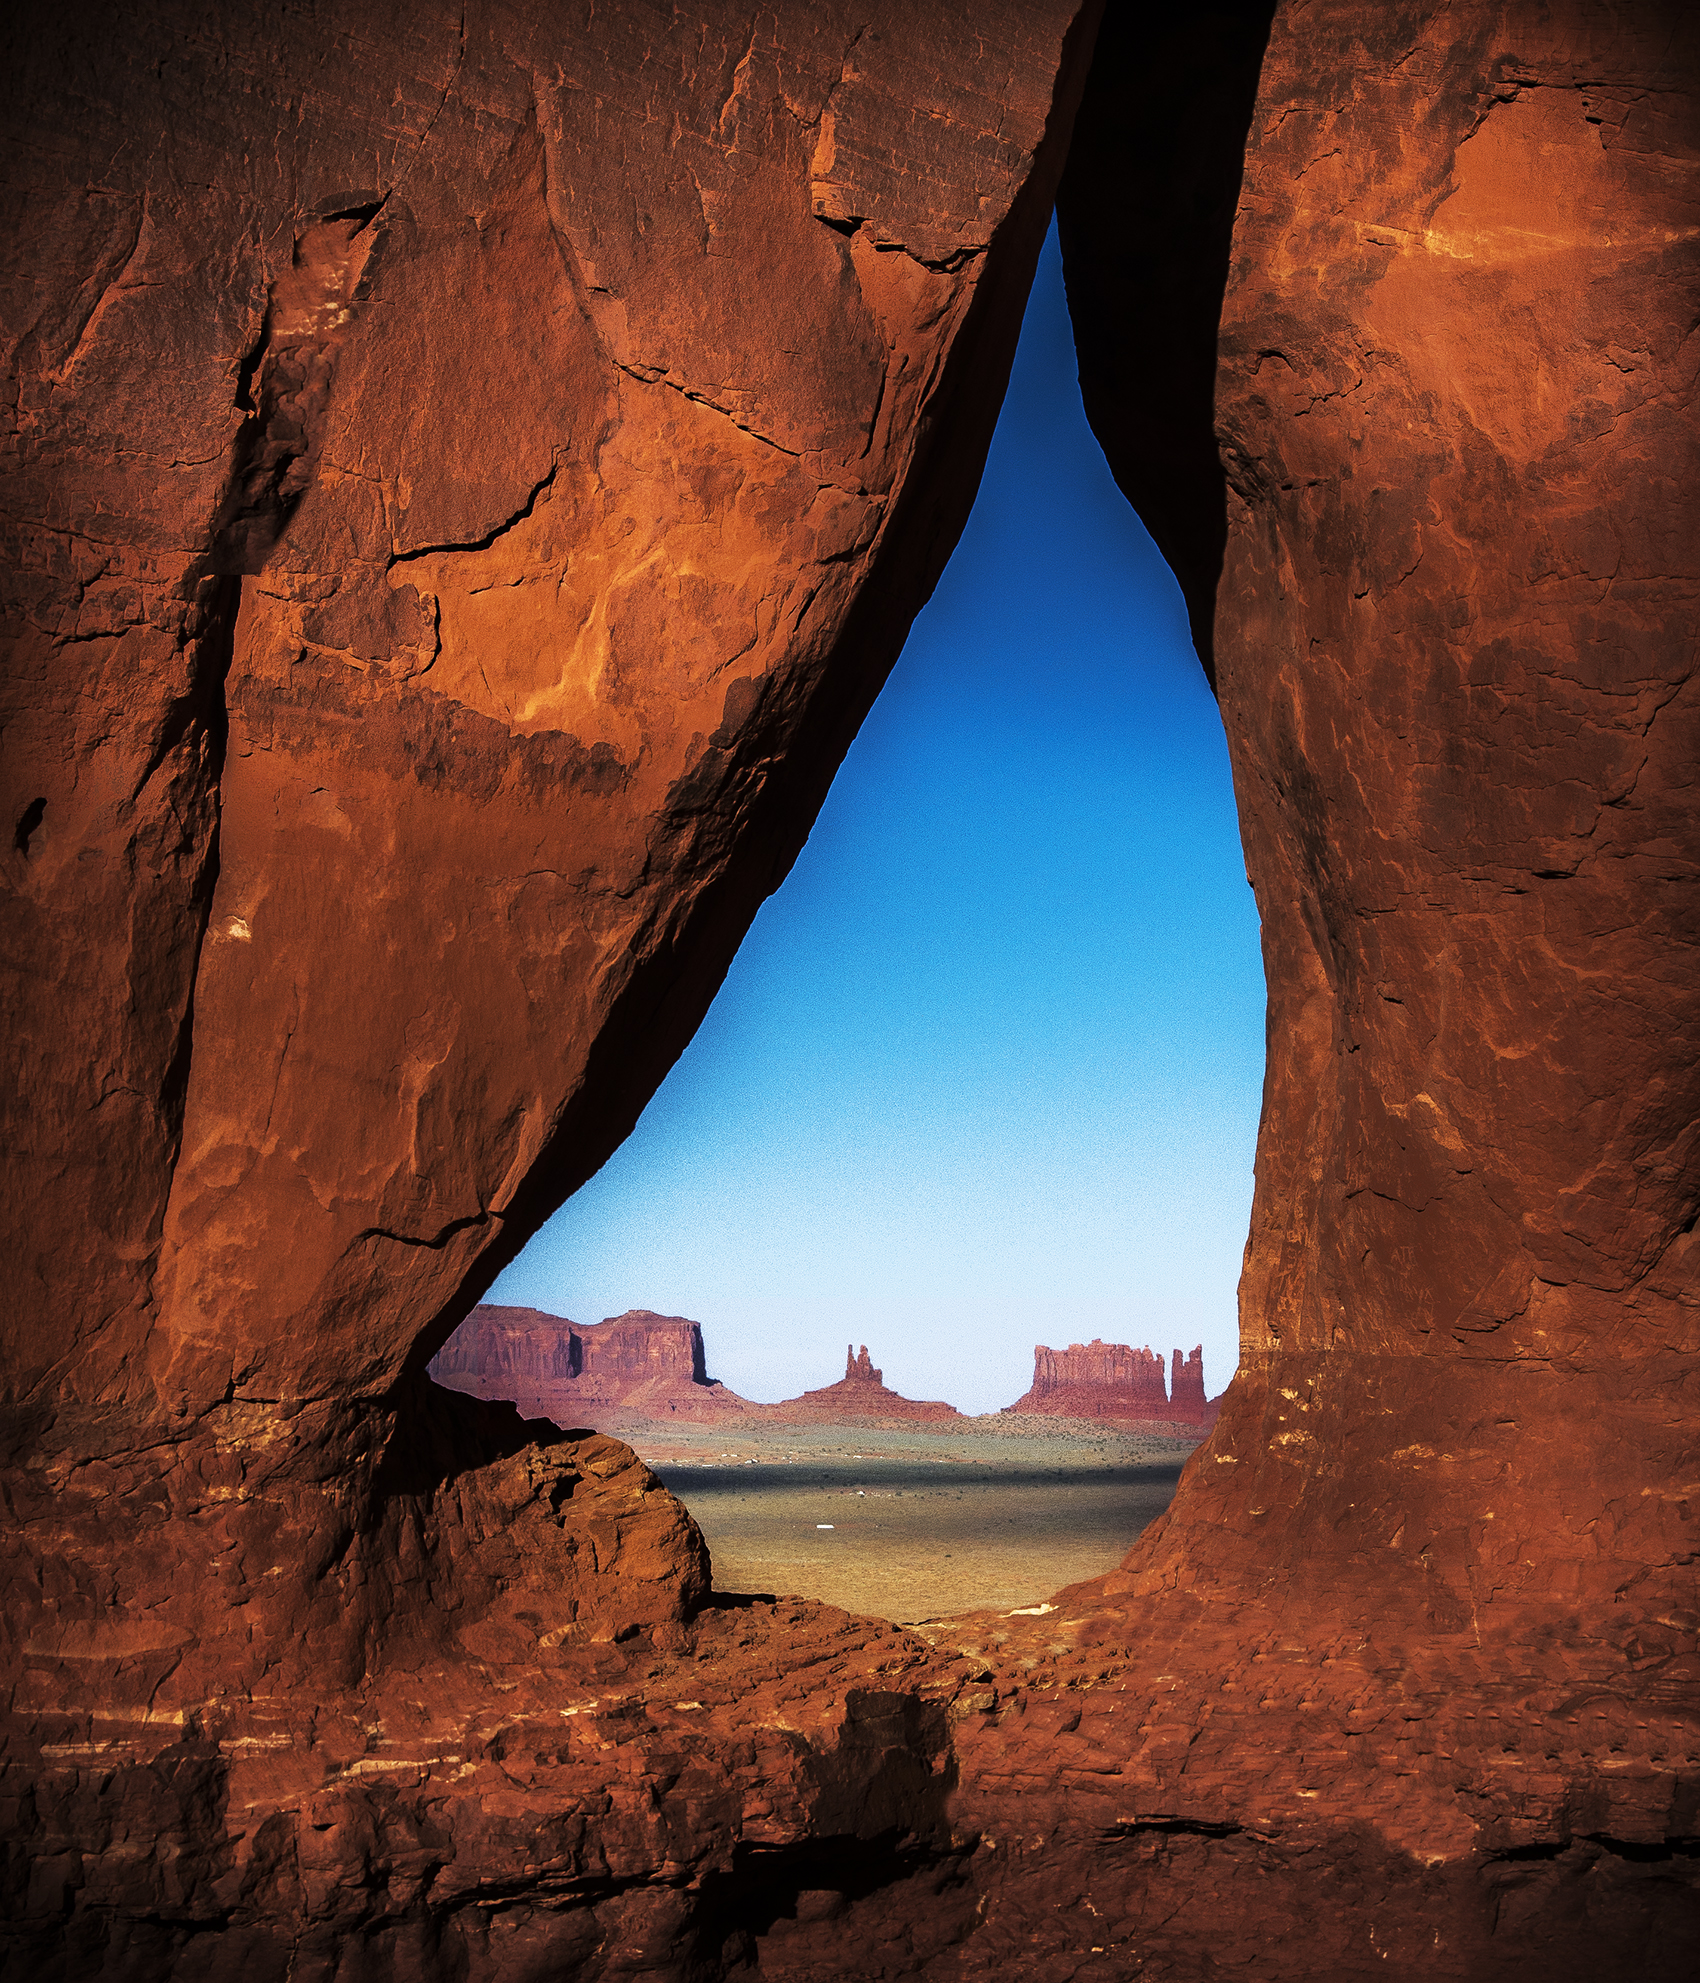 The Notch at Monument Valley 4-15-12 DSC_0306 (2).jpg